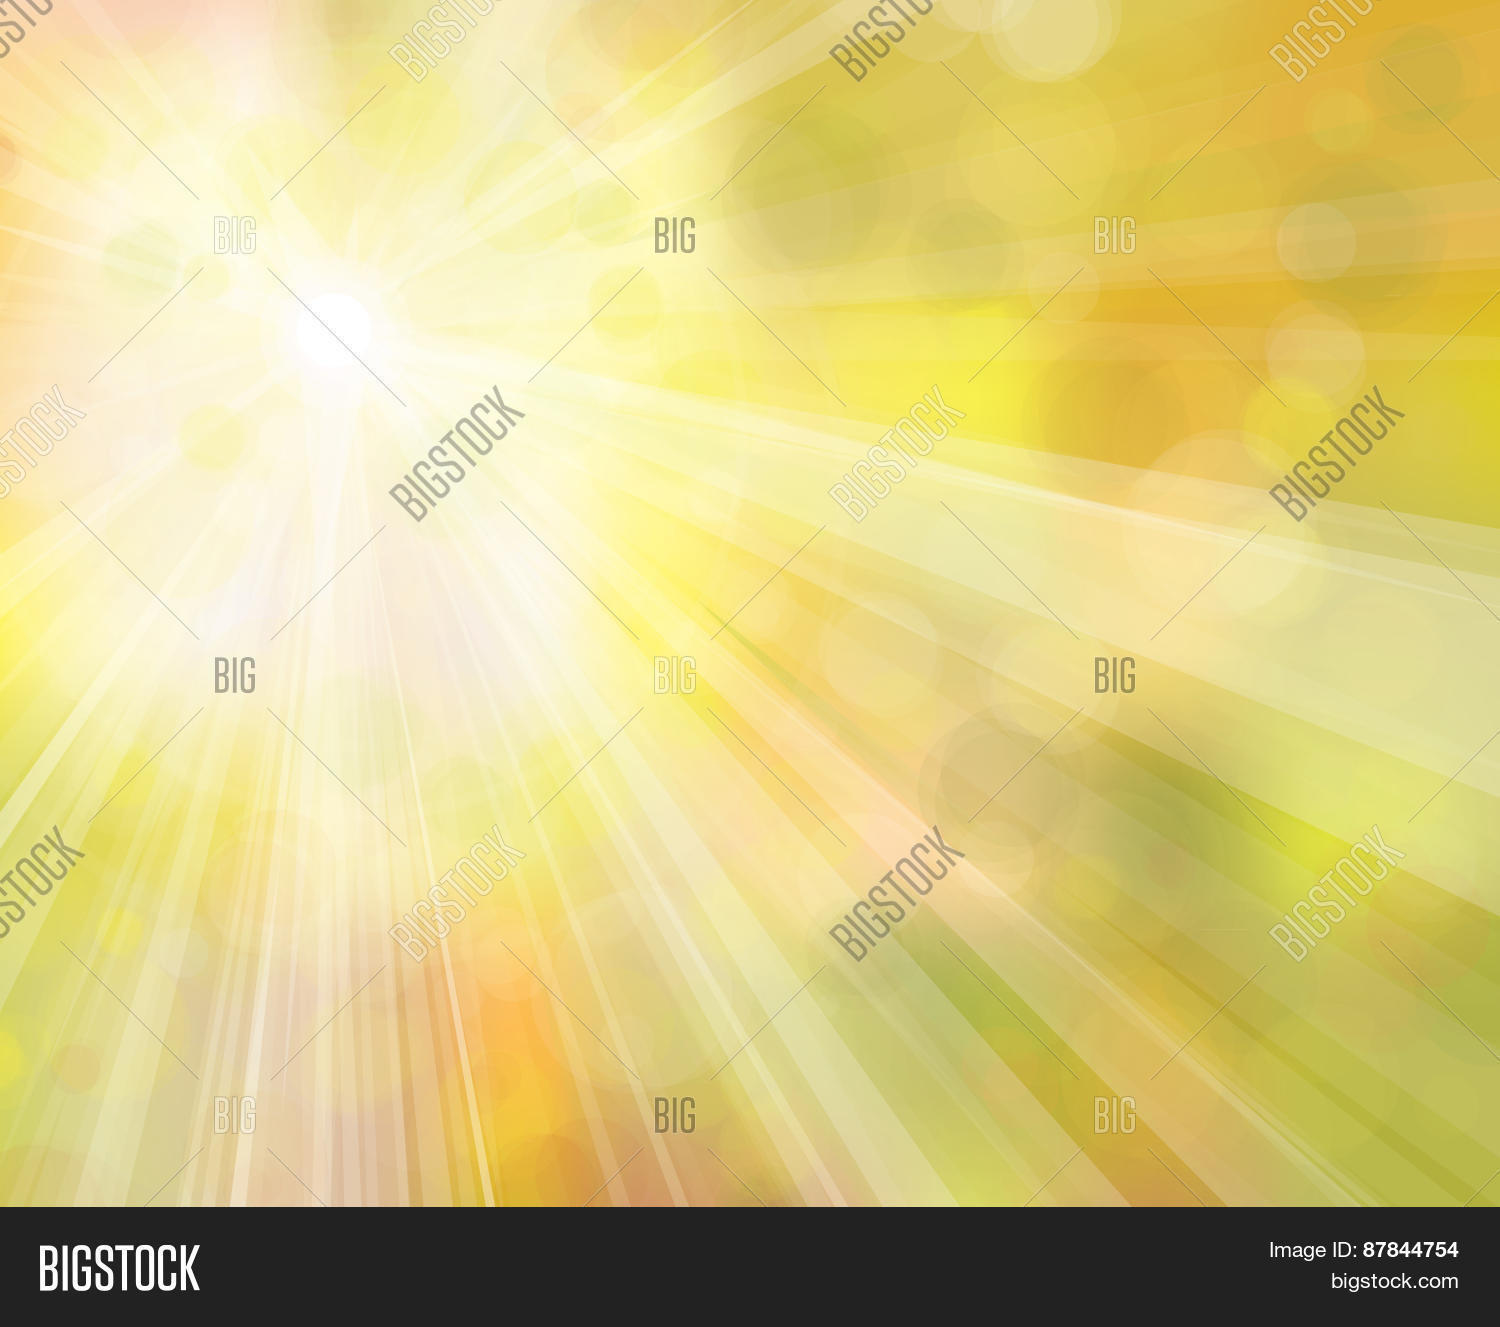 abstract,autumn,autumnal,autumn background,backgraund,background,background green,beautiful,beautiful background,beauty,beauty background,bright,bright background,color,color background,colorful,colorful background,colorful backgrounds,cute,day,decoration,design,dot,dot pattern,fall,fall background,fall backgrounds,gold,gold background,golden,golden background,graphic,green,green background,green backgrounds,light background,lights background,nature,nature abstract,nature background,nature backgrounds,pastel,pastel background,pattern,pattern background,rays,shine,sky,spring,spring background,spring vector,summer,summer background,sun,sunlight,sunny,sunny day,sunny sky,sun rays,sunrays,sunshine,sun vector,tender,texture,vector,wallpaper,white,yellow,yellow background